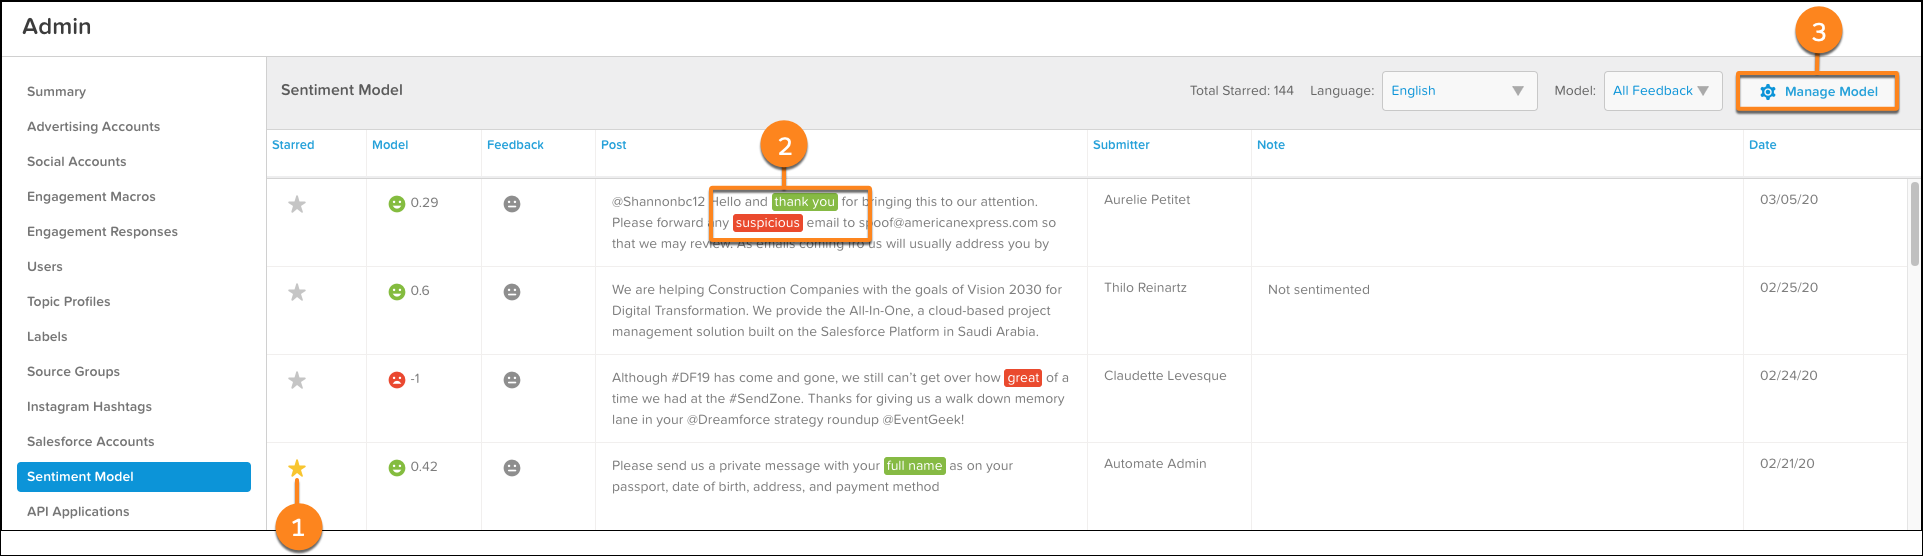 Sentiment model admin screen with callouts for starred, highlighted words, and the manage model button.